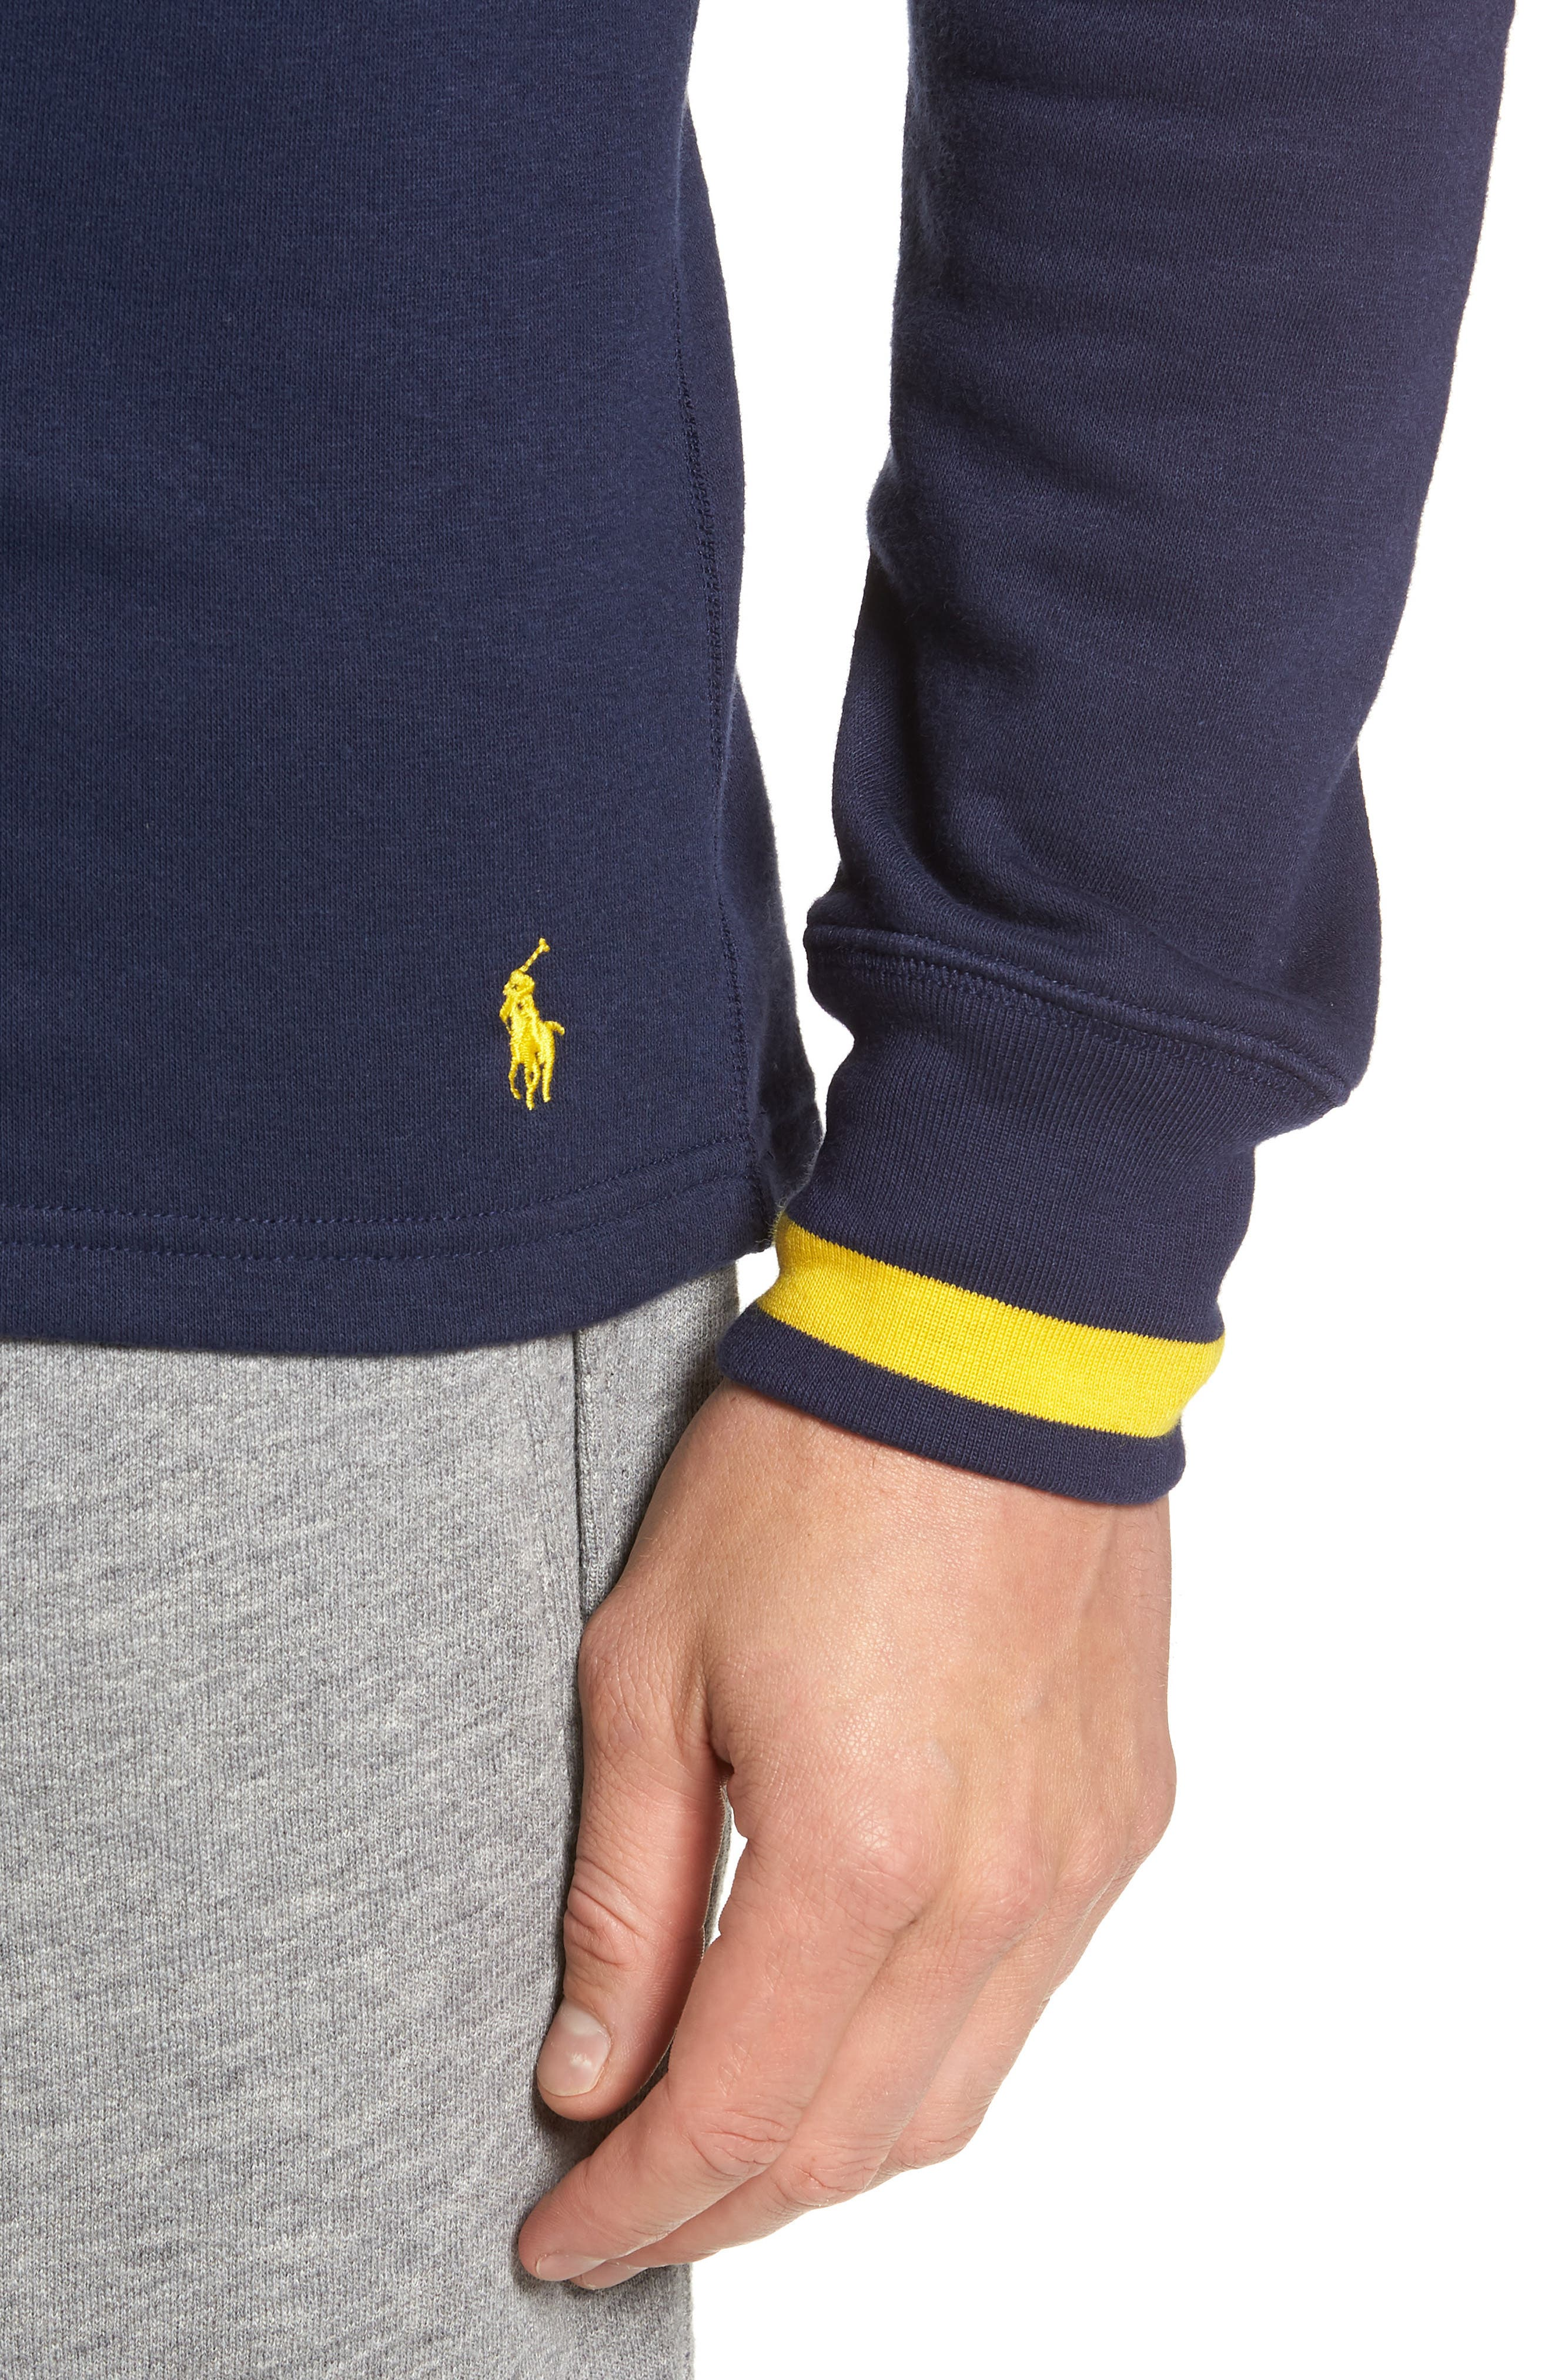 POLO RALPH LAUREN, Brushed Jersey Cotton Blend Crewneck Sweatshirt, Alternate thumbnail 4, color, CRUISE NAVY